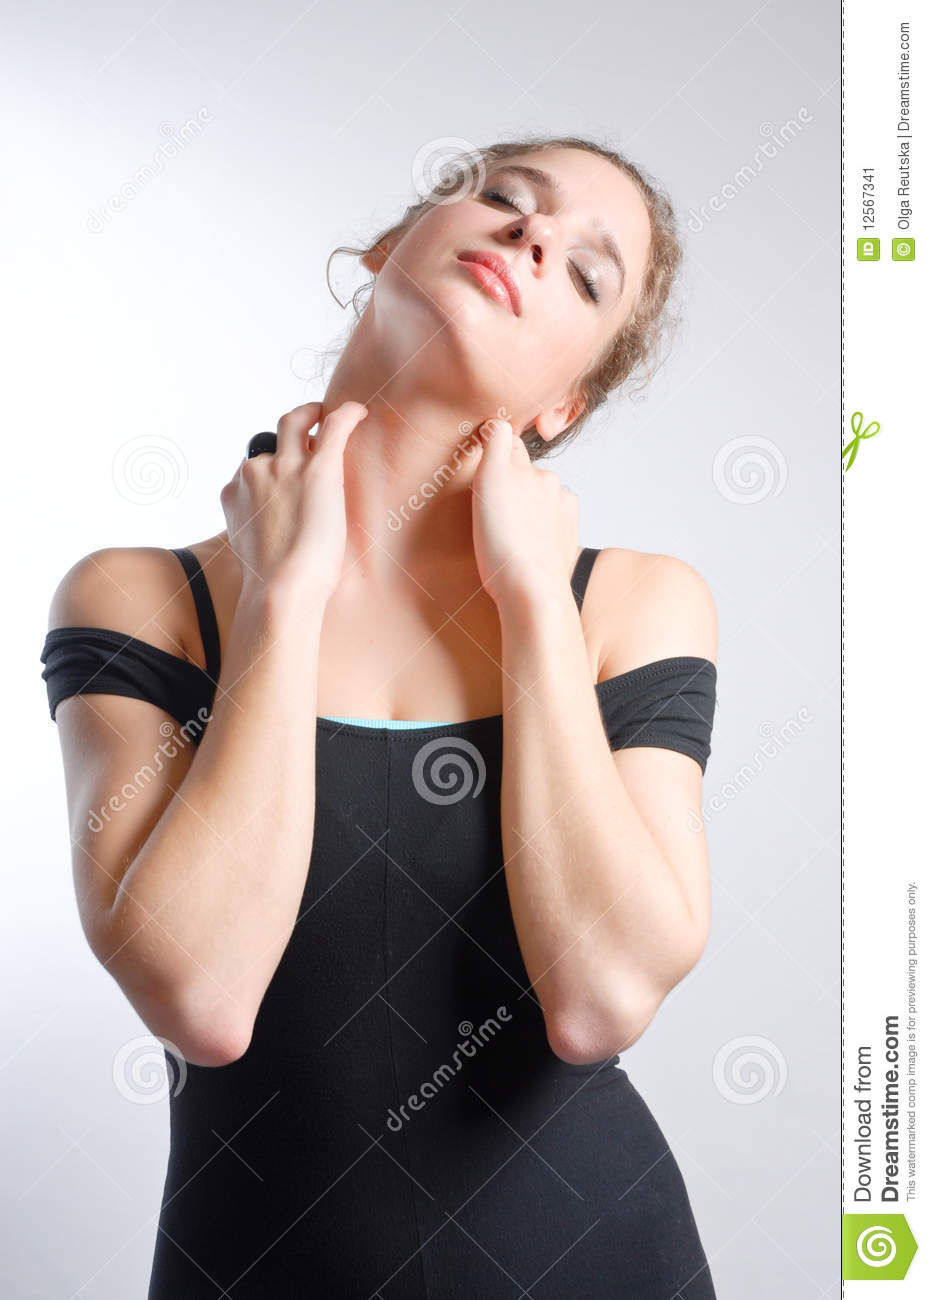 Young woman in dancer s leotard stretching neck